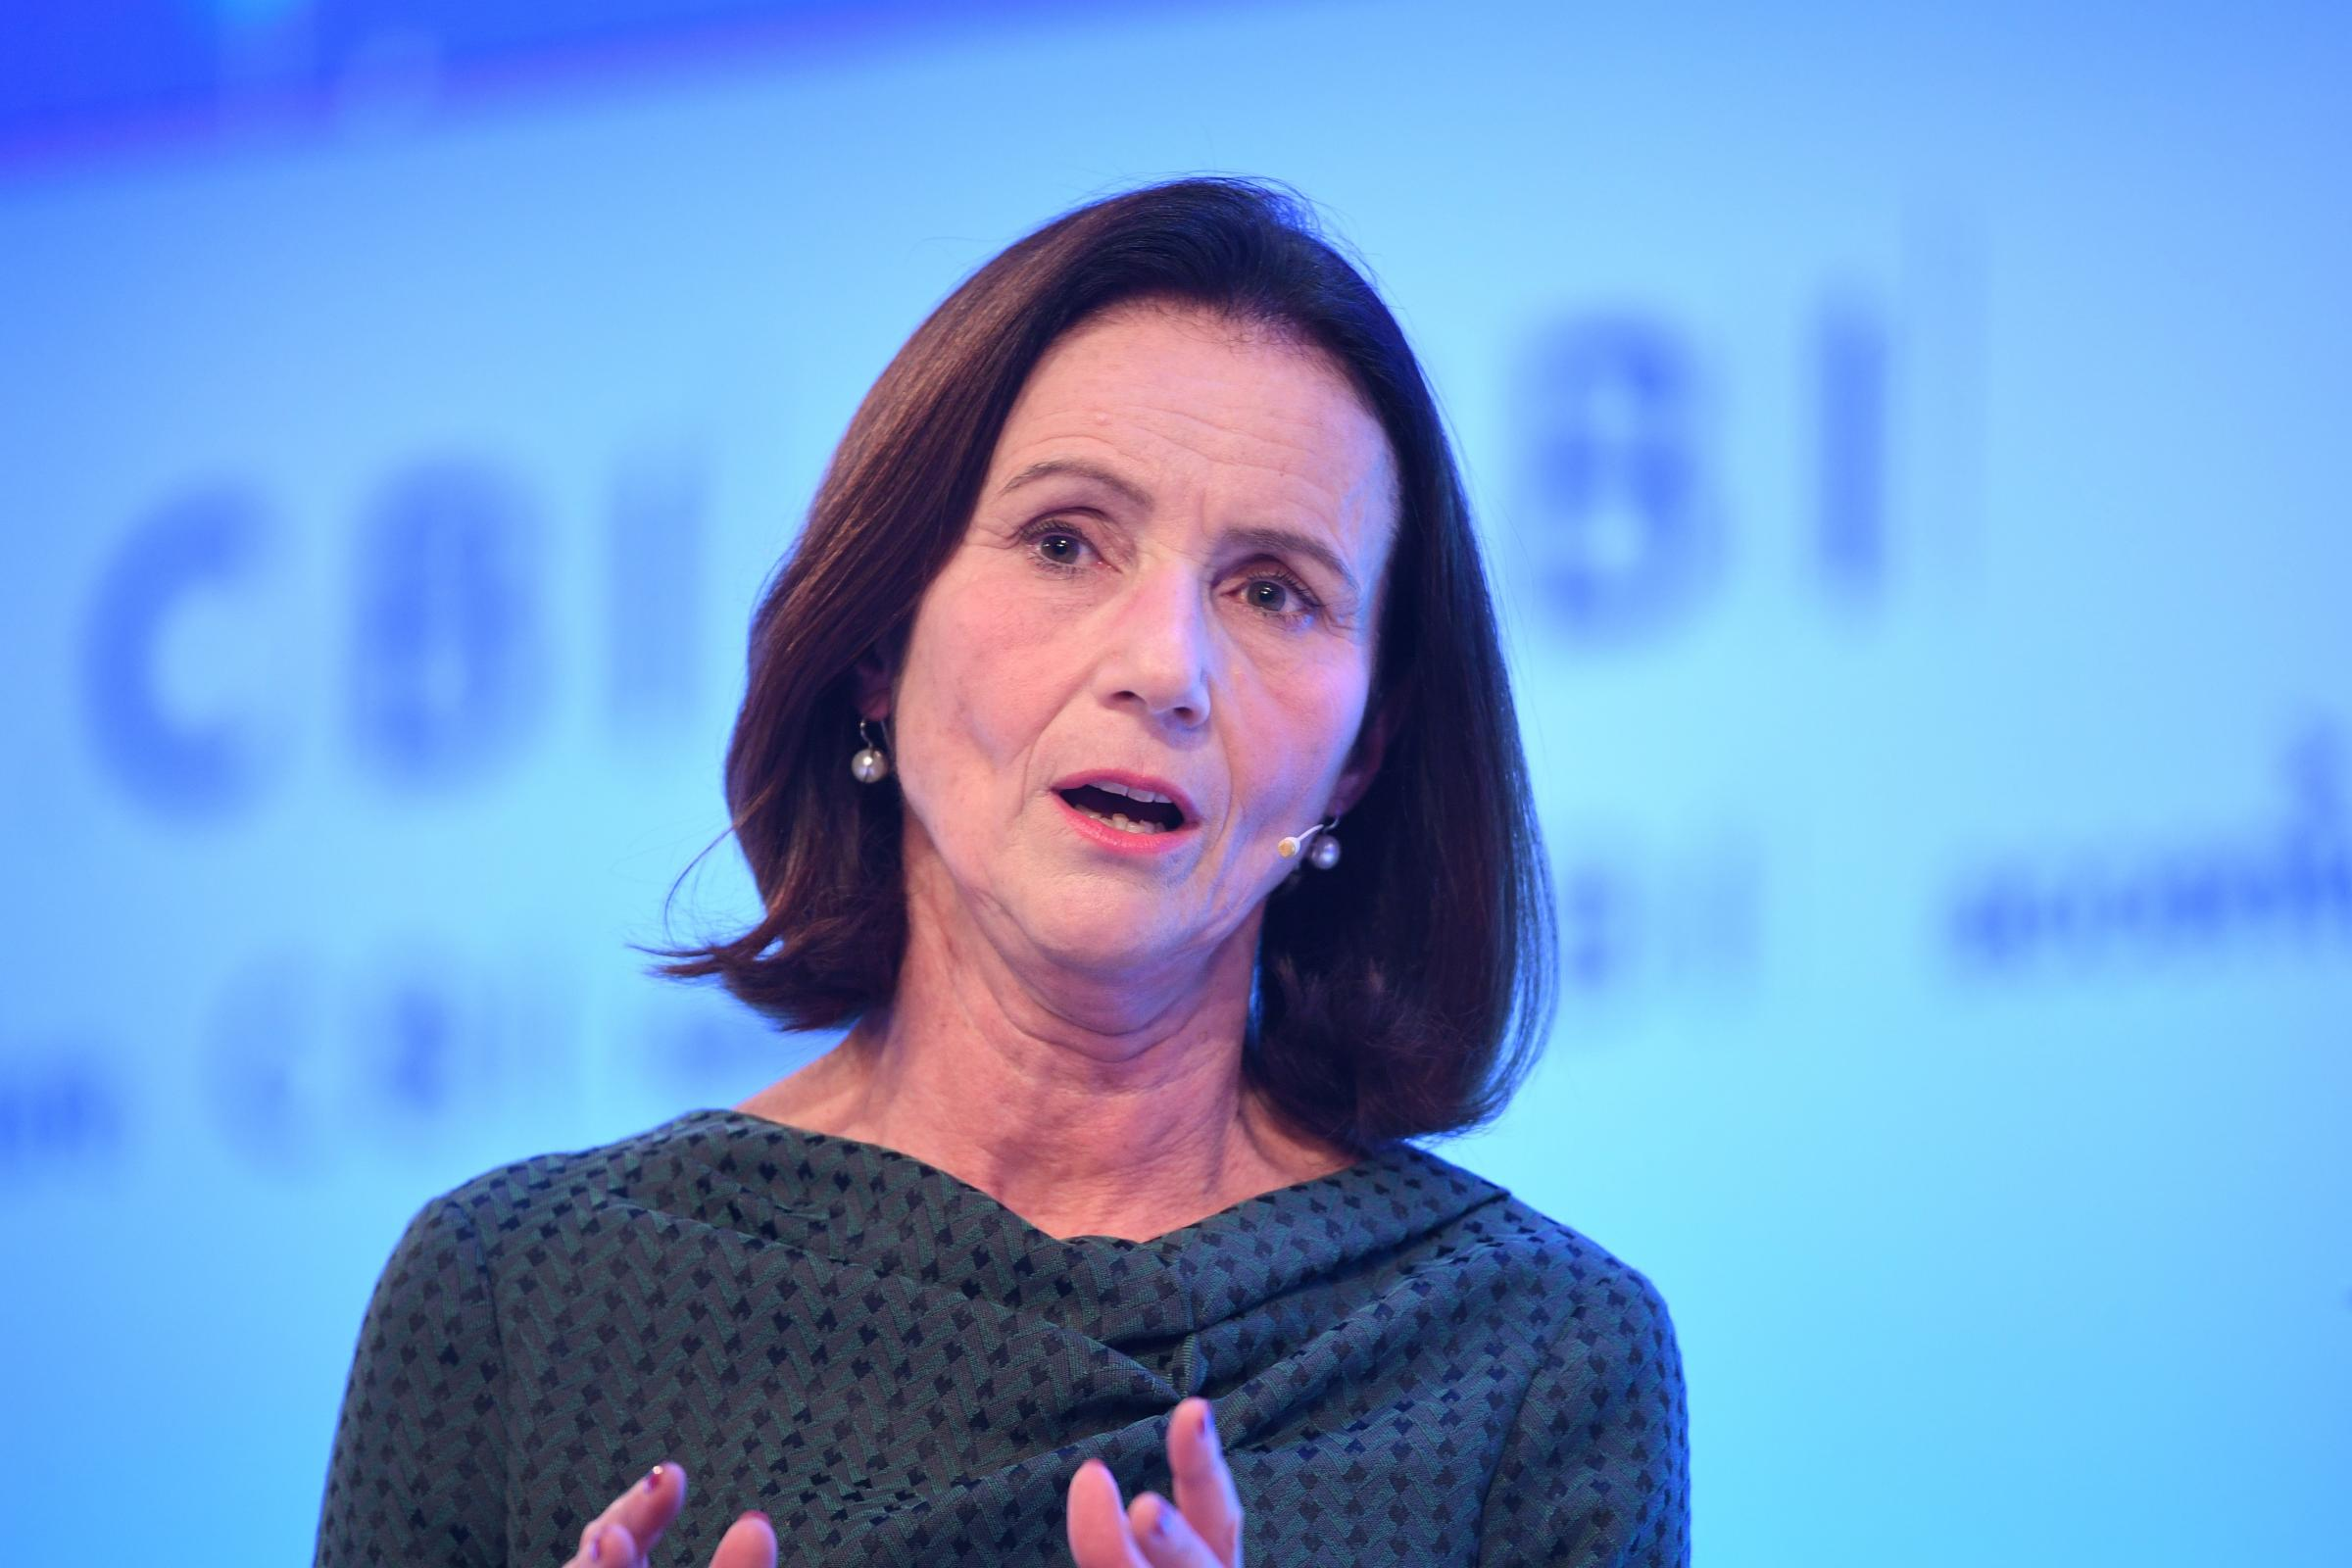 Confidence in Britain is faltering, CBI chief warns - Chelmsford Weekly News